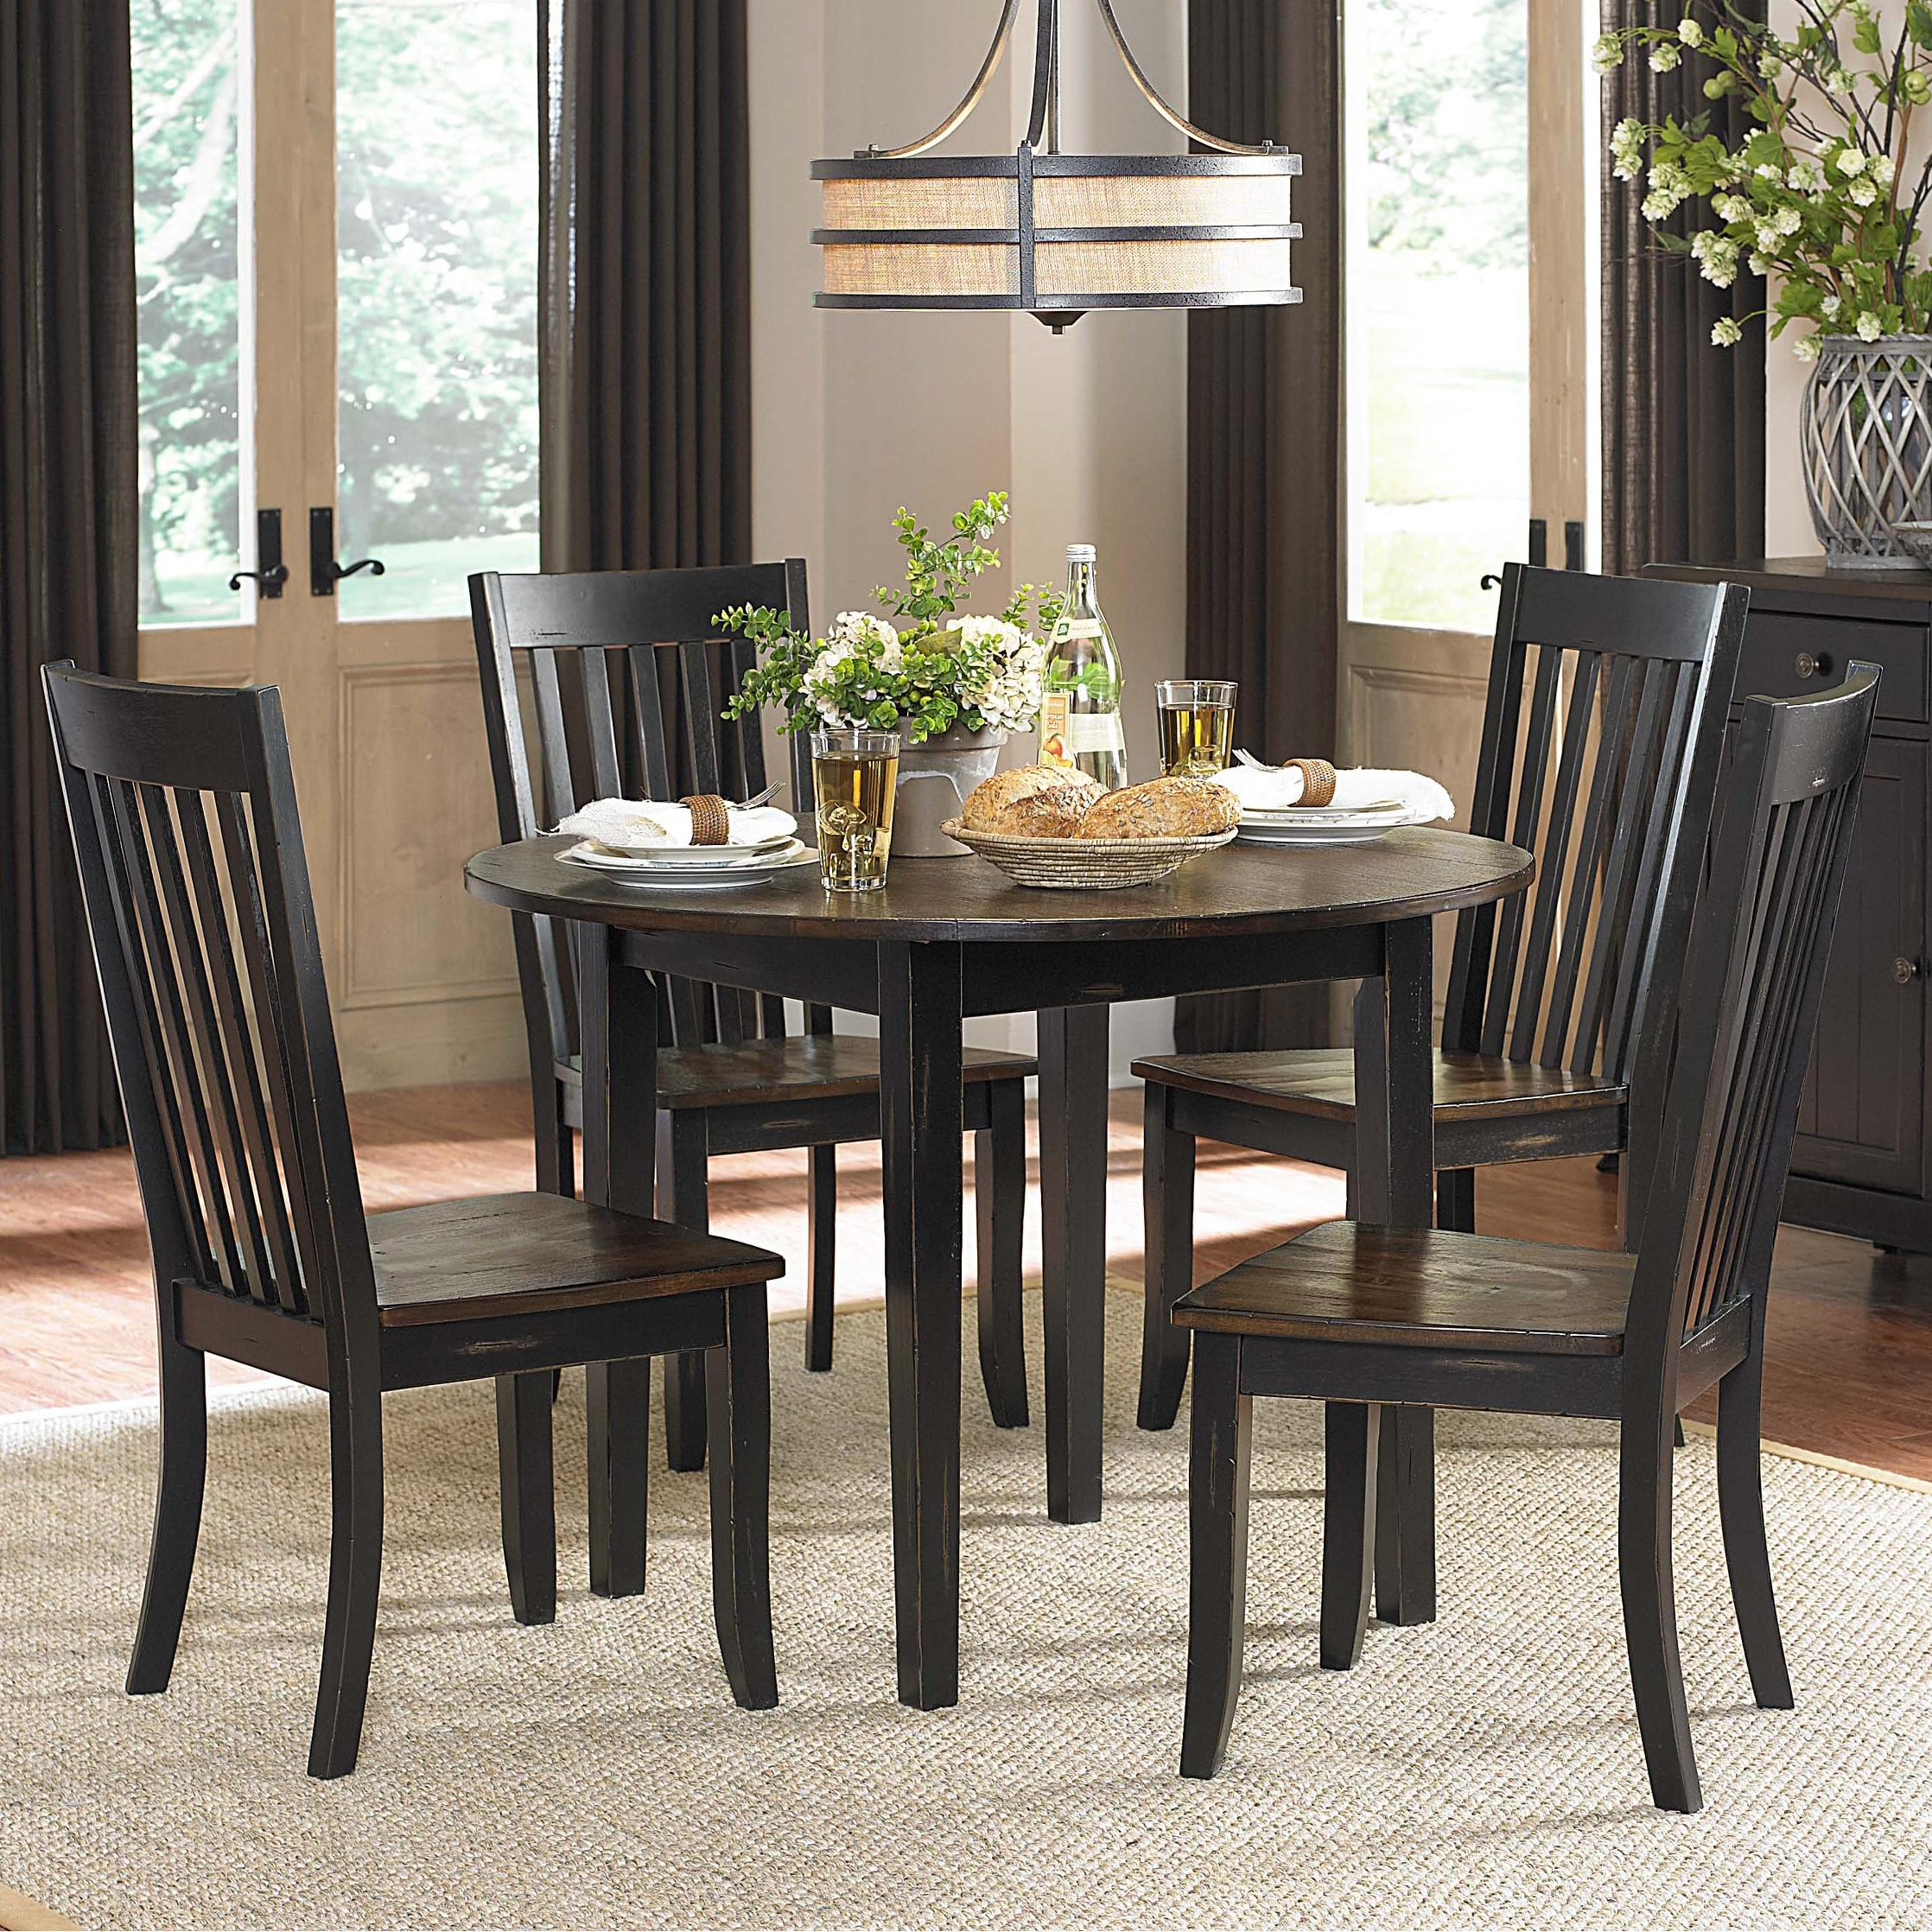 Homelegance Three Falls 5 Piece Dining Set With Round Drop Leaf Table Del S